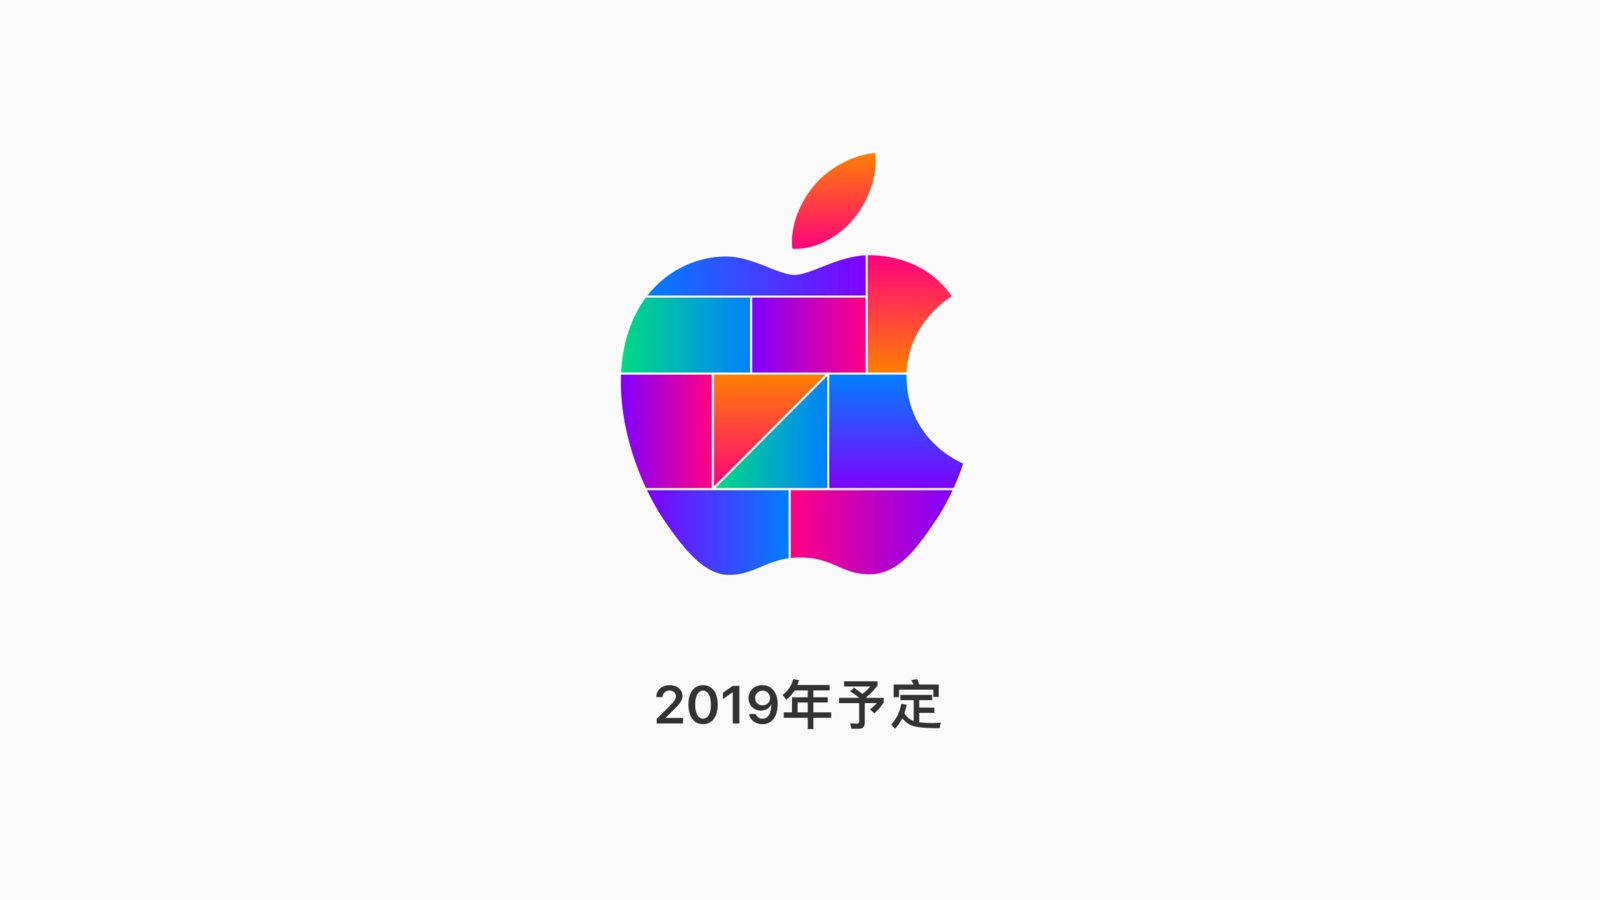 Apple Teases New Japanese Retail Store for 2019, Promotes Shibuya Reopening with Custom Wallpapers